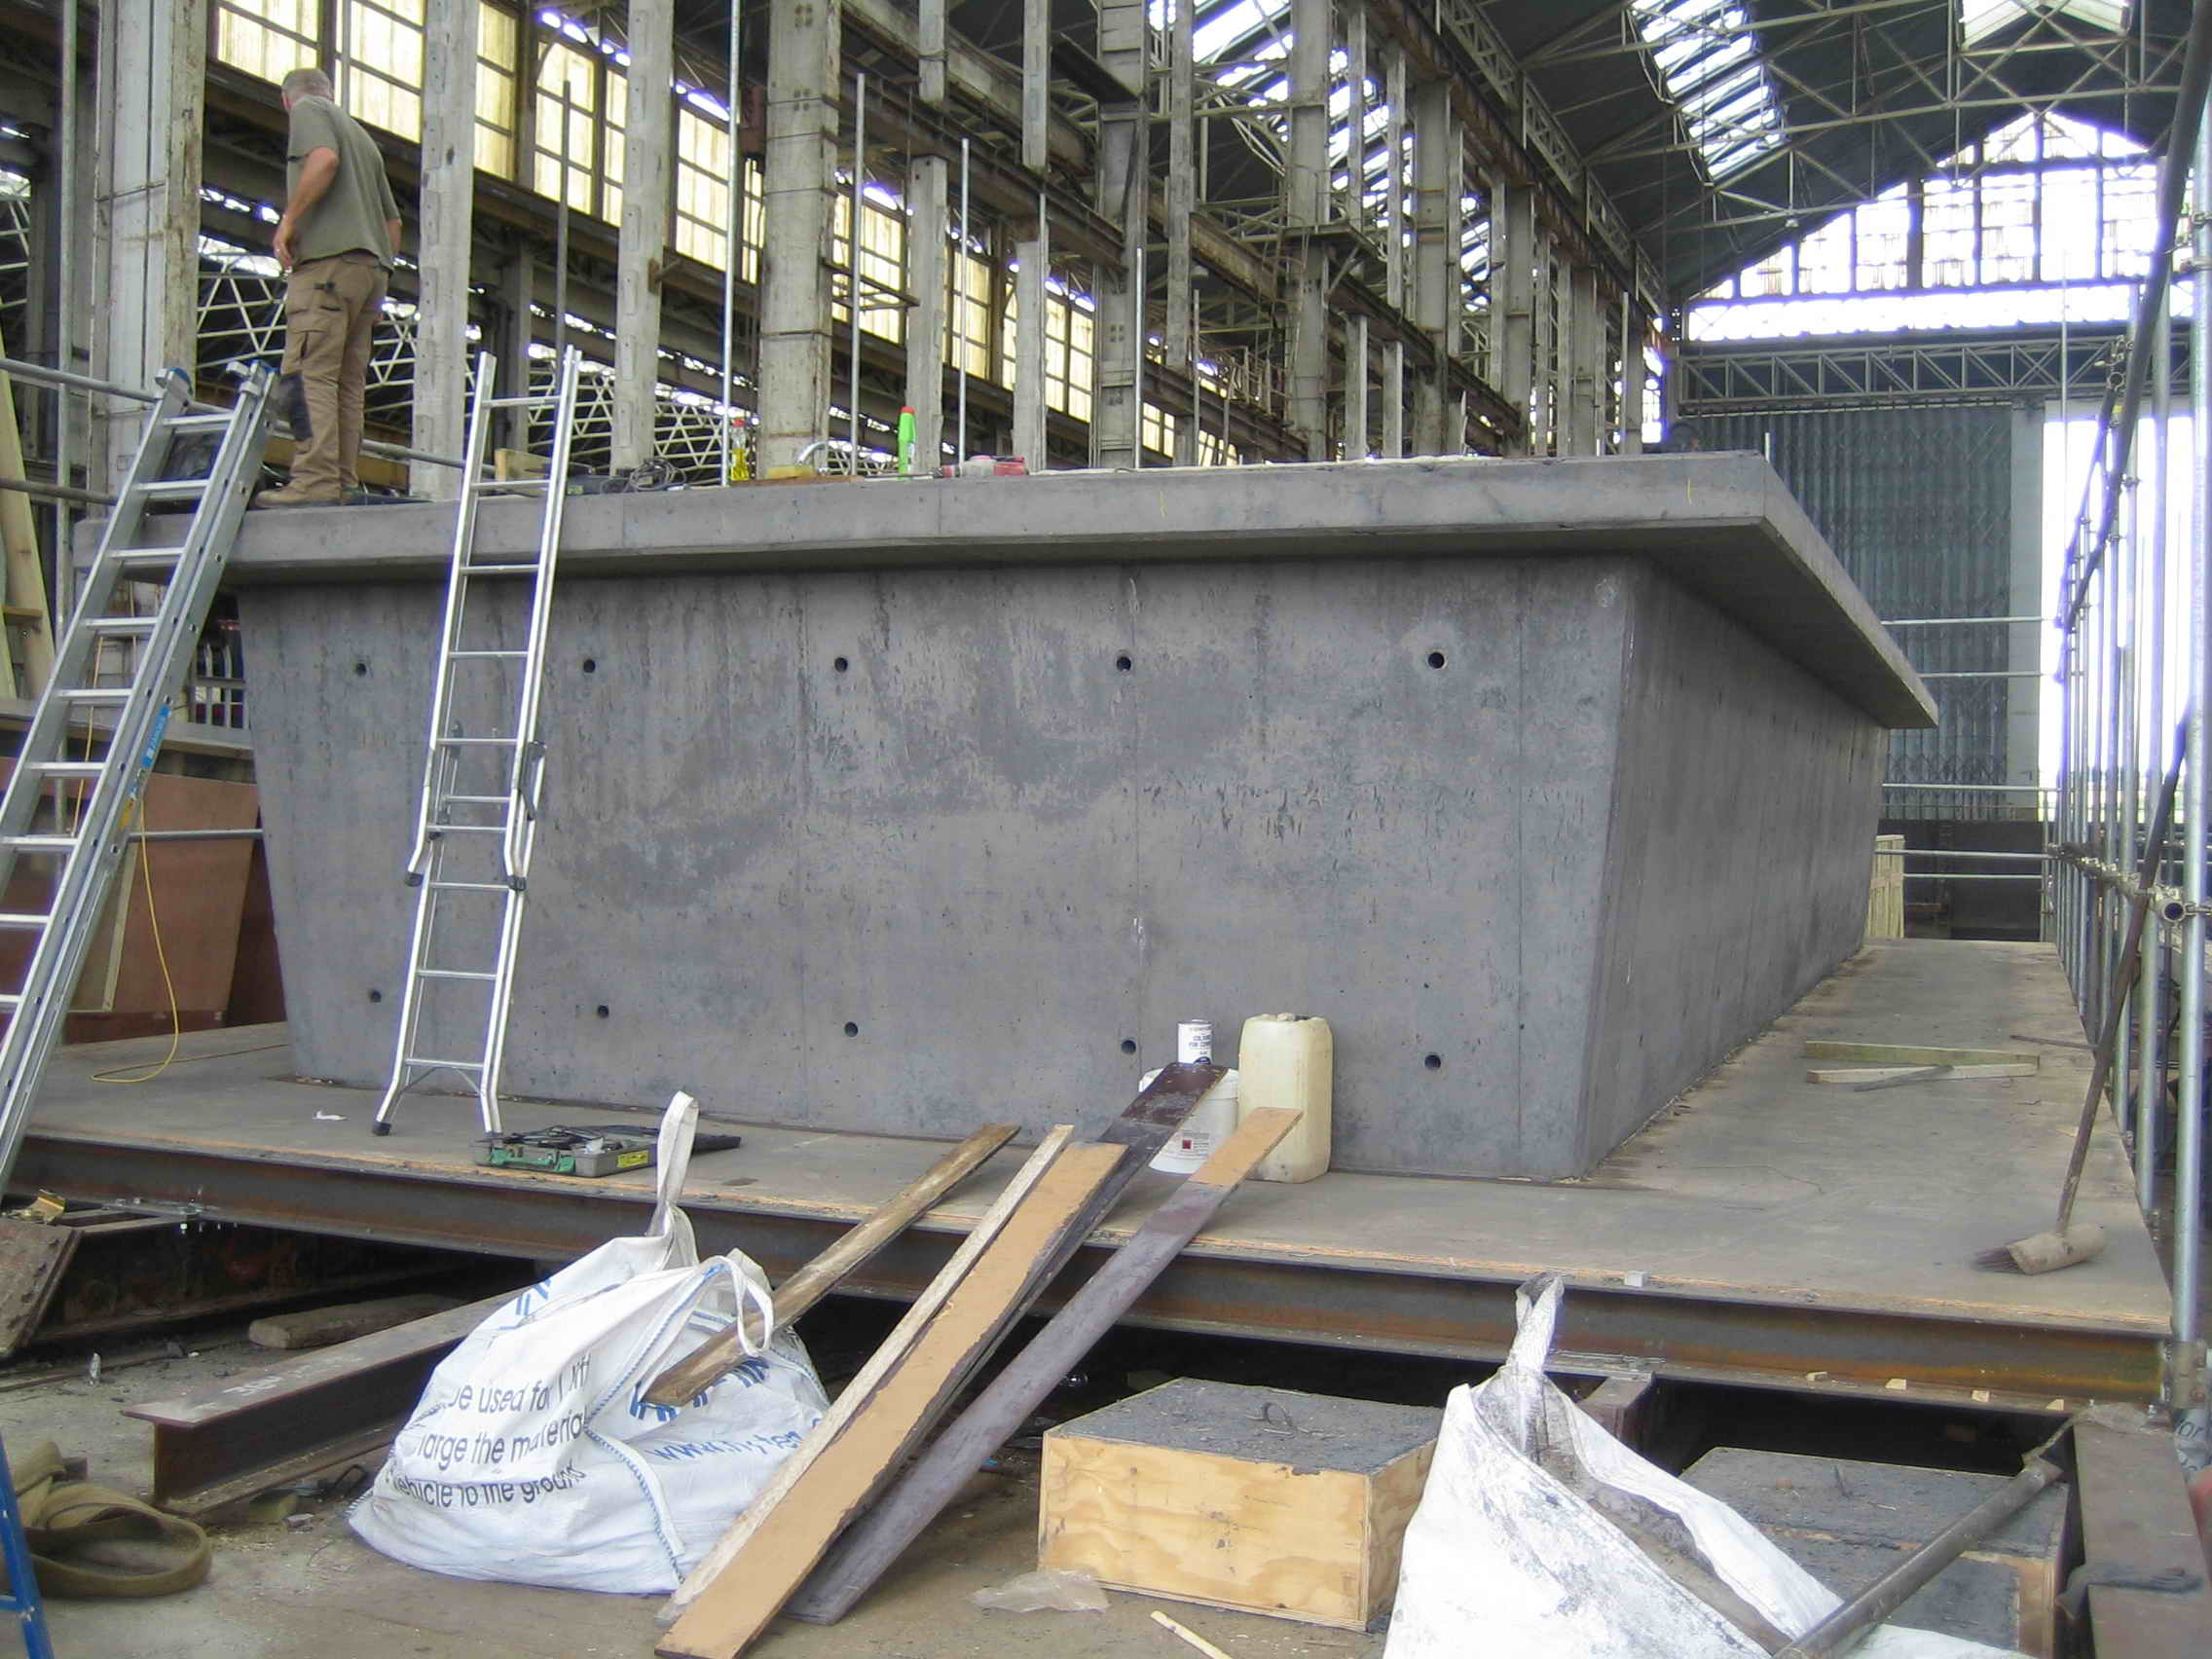 Concrete hull hubb 100 years maintenance free for Home decor hull limited